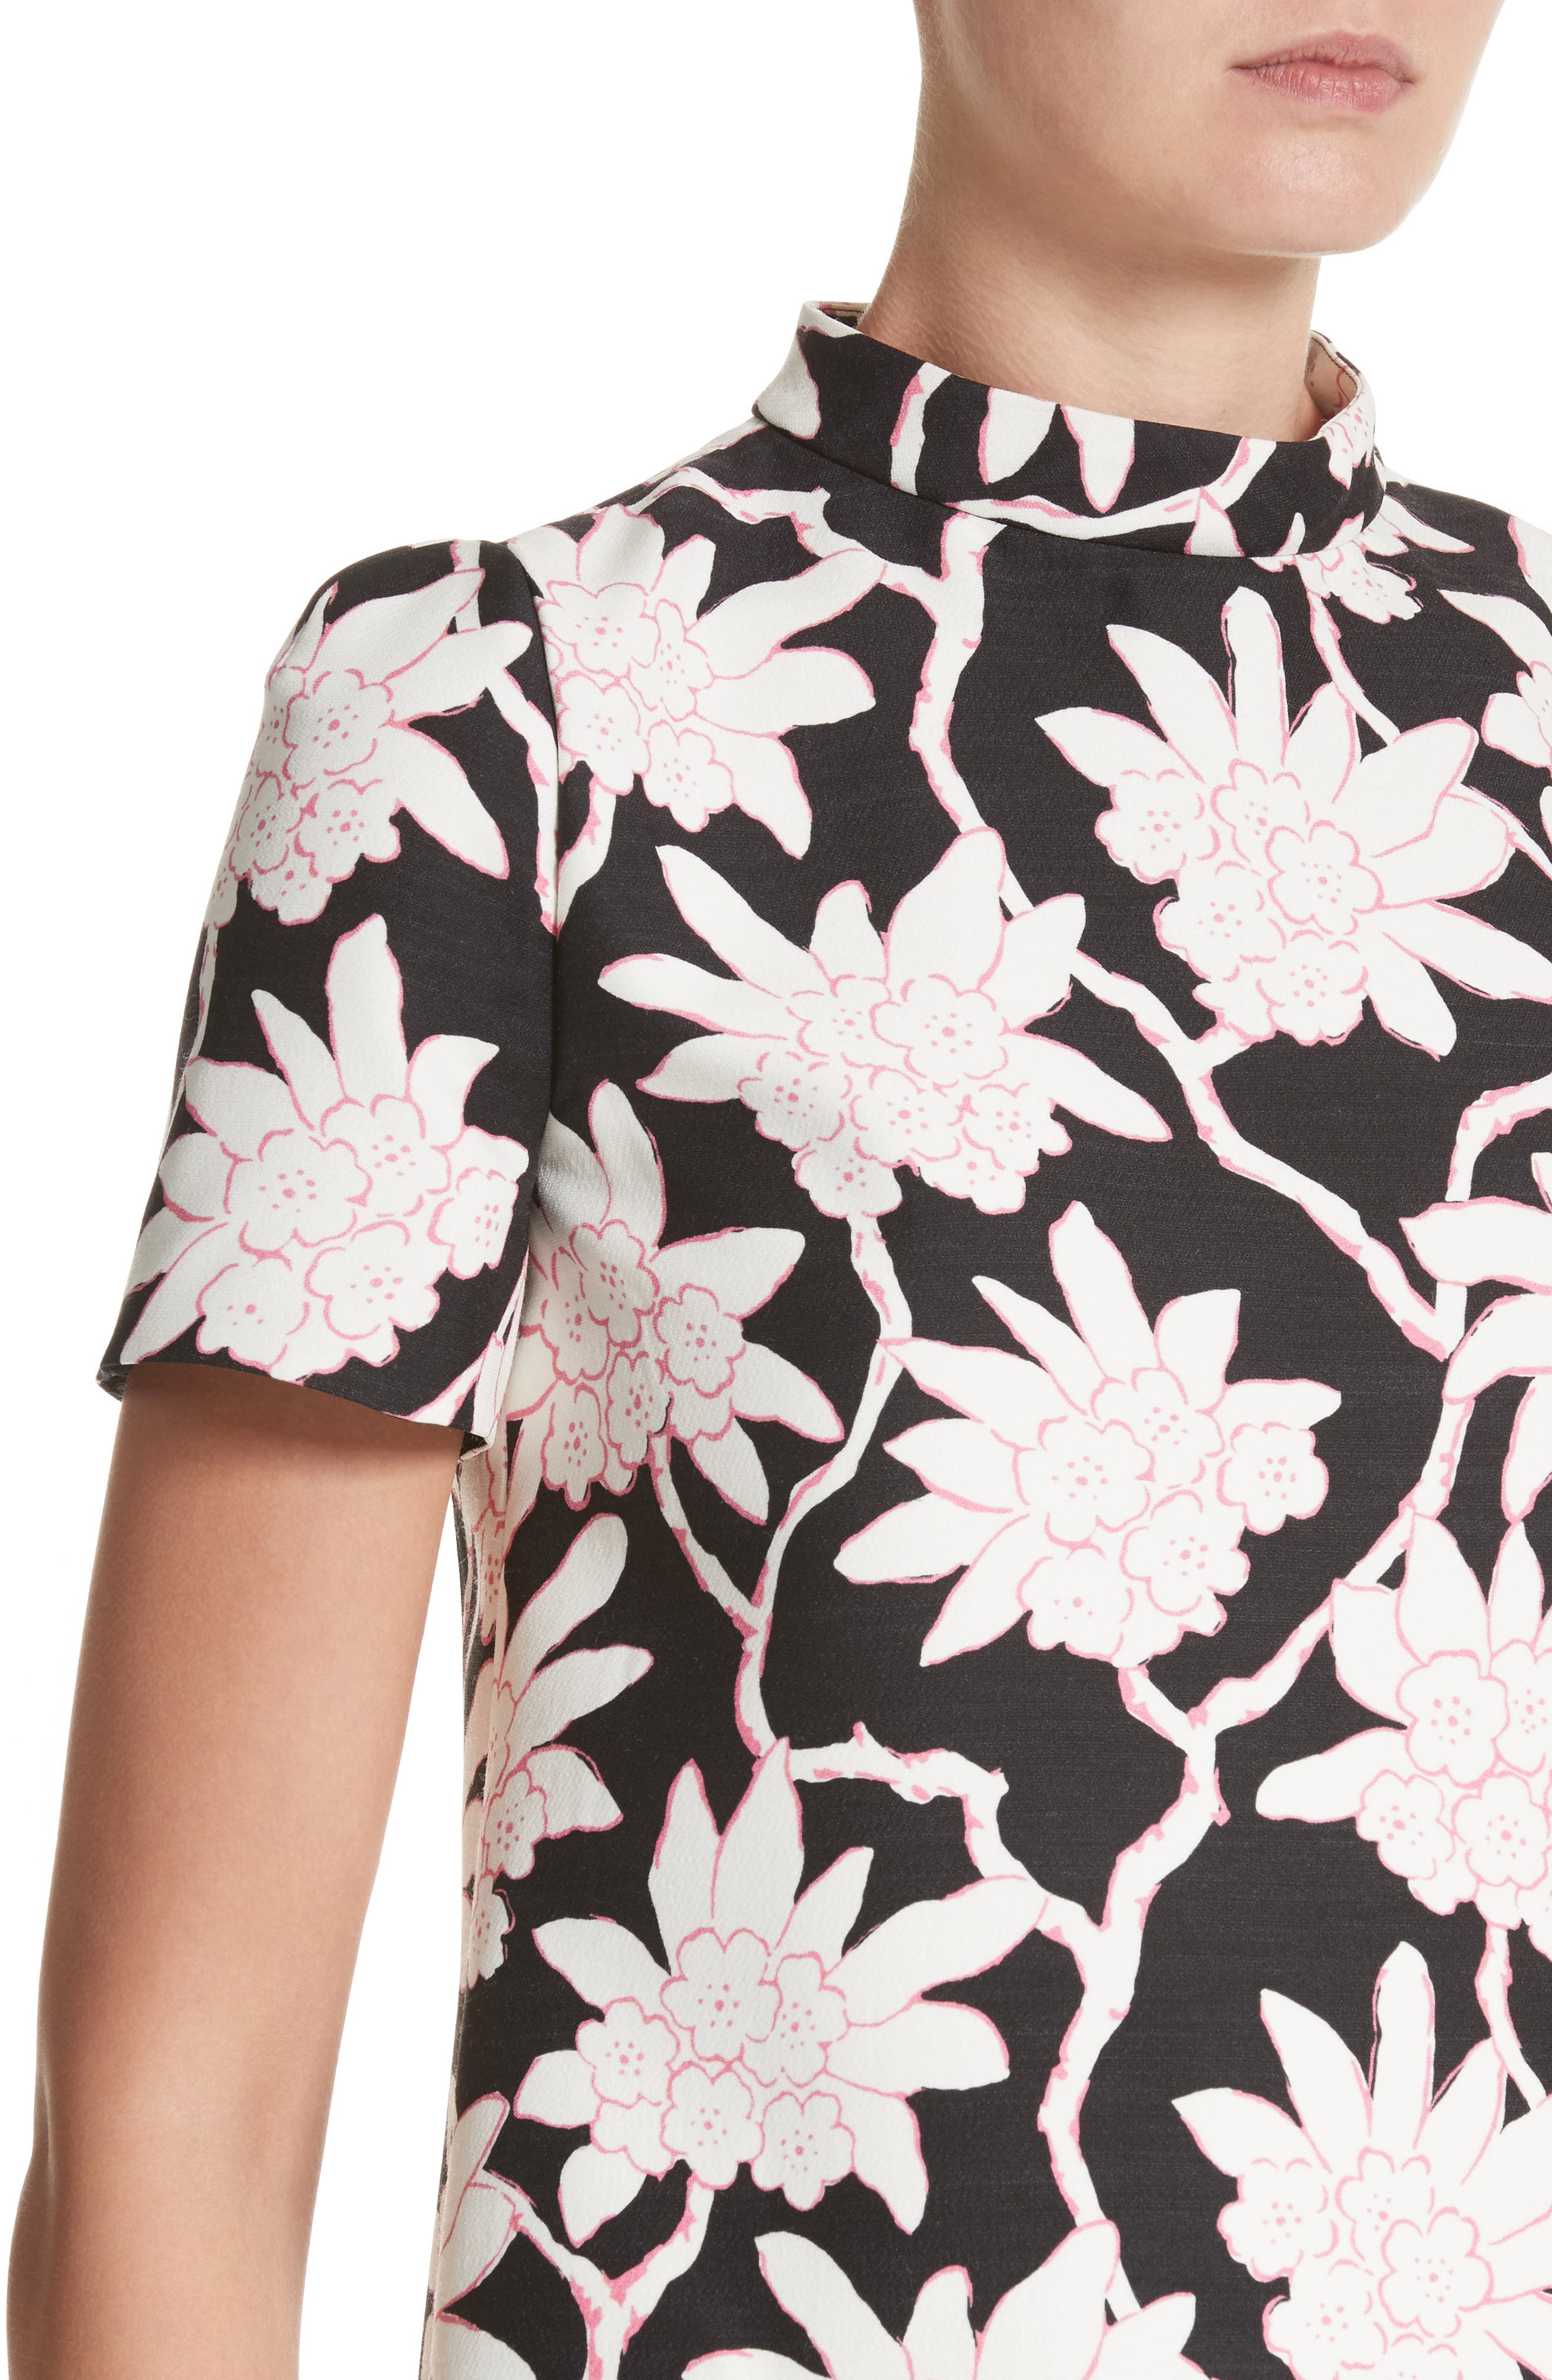 Rhododendron Print Wool & Silk Top,                             Alternate thumbnail 4, color,                             Black